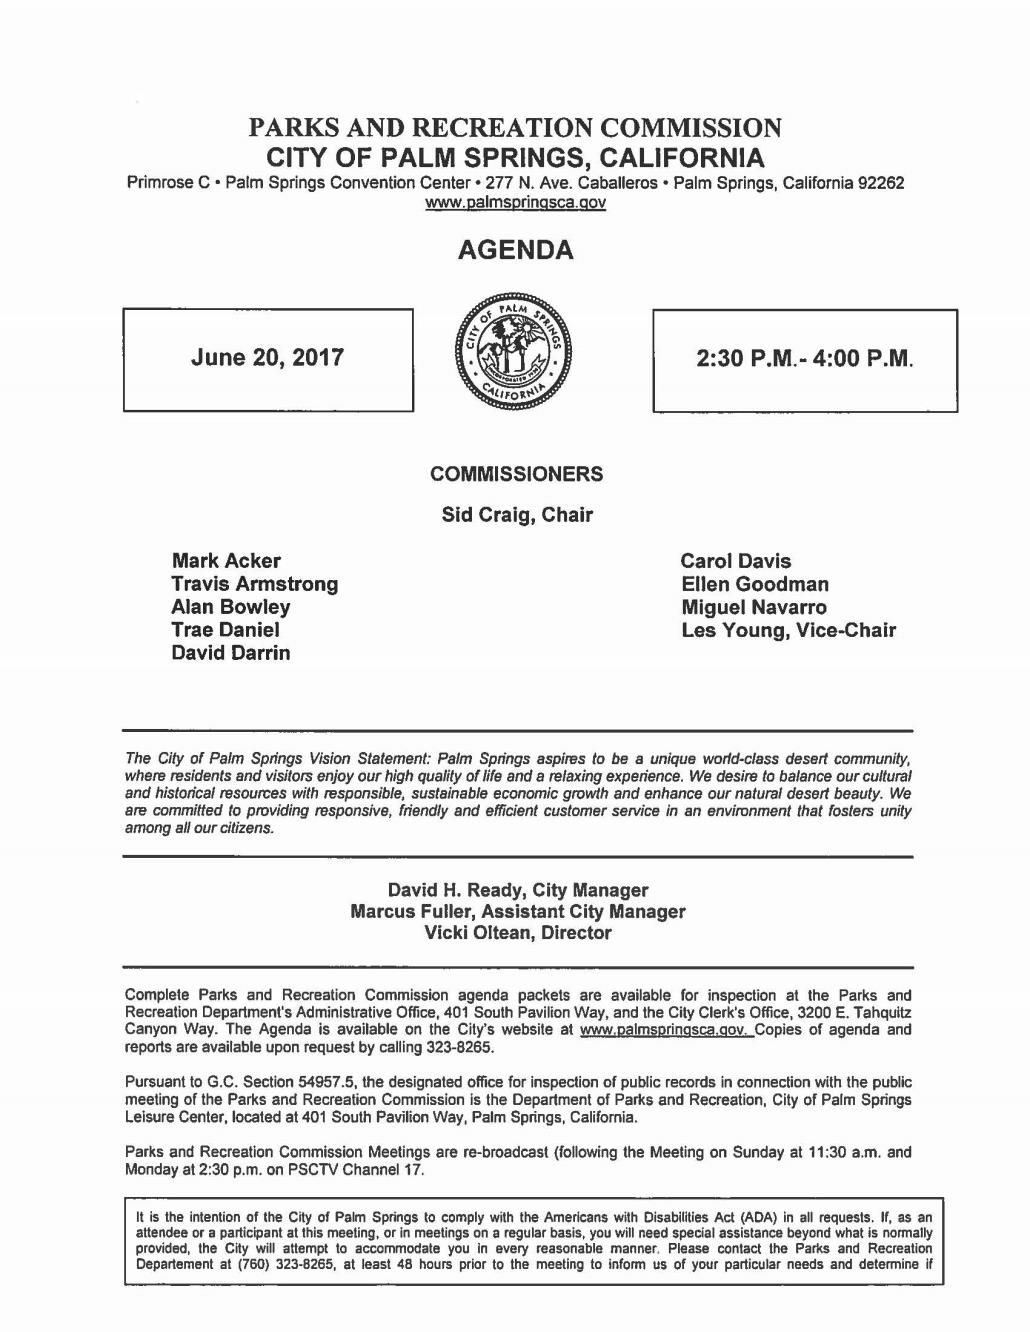 Parks&recreation agenda 06202017_Page_1